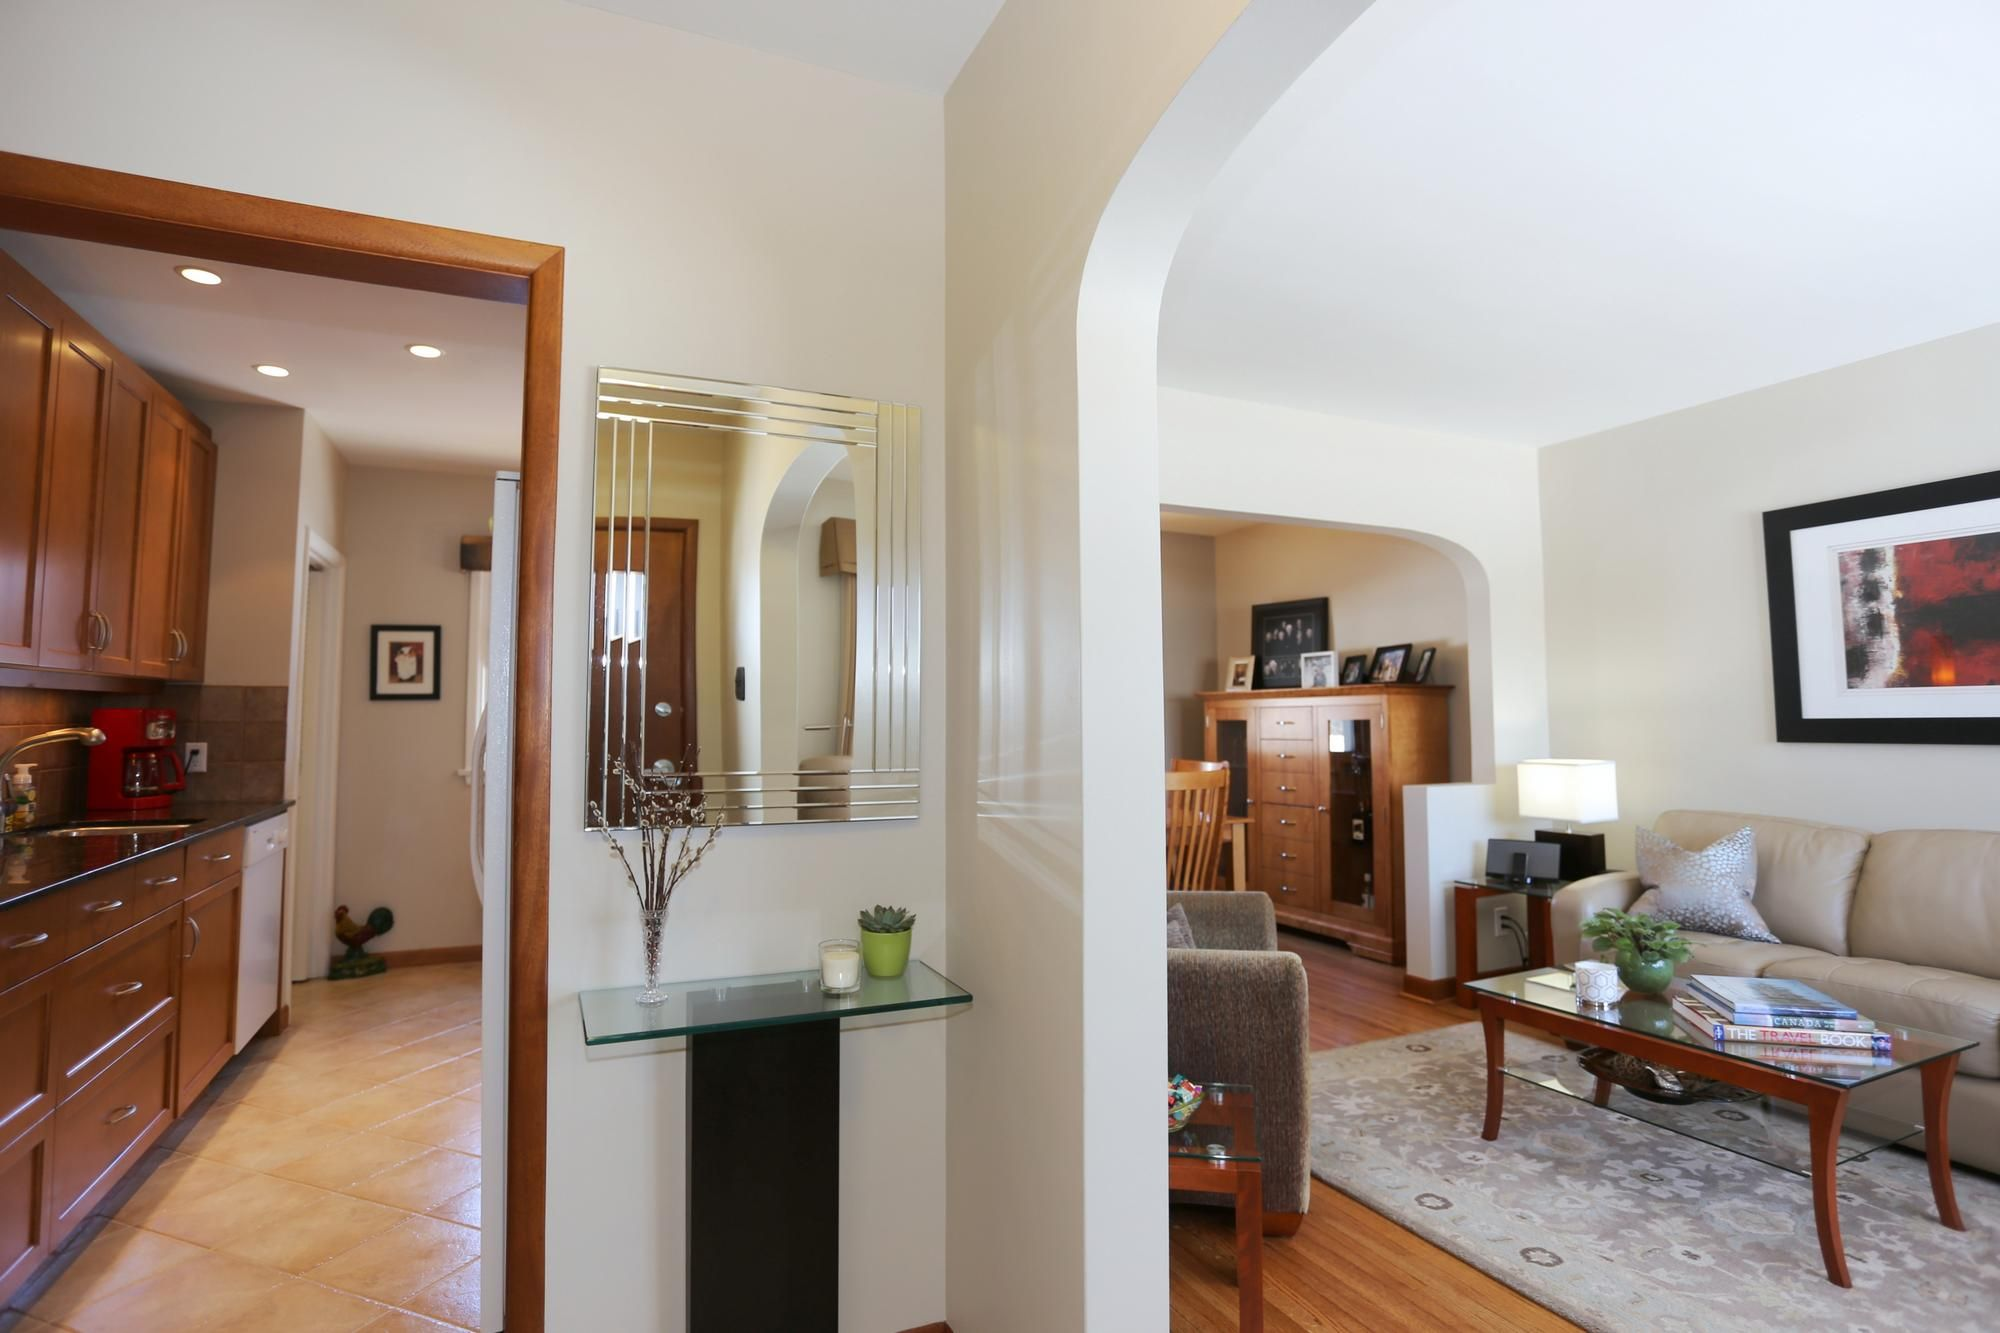 Photo 6: Photos: 349 Guildford Street in Winnipeg: St James Single Family Detached for sale (5E)  : MLS®# 1807654